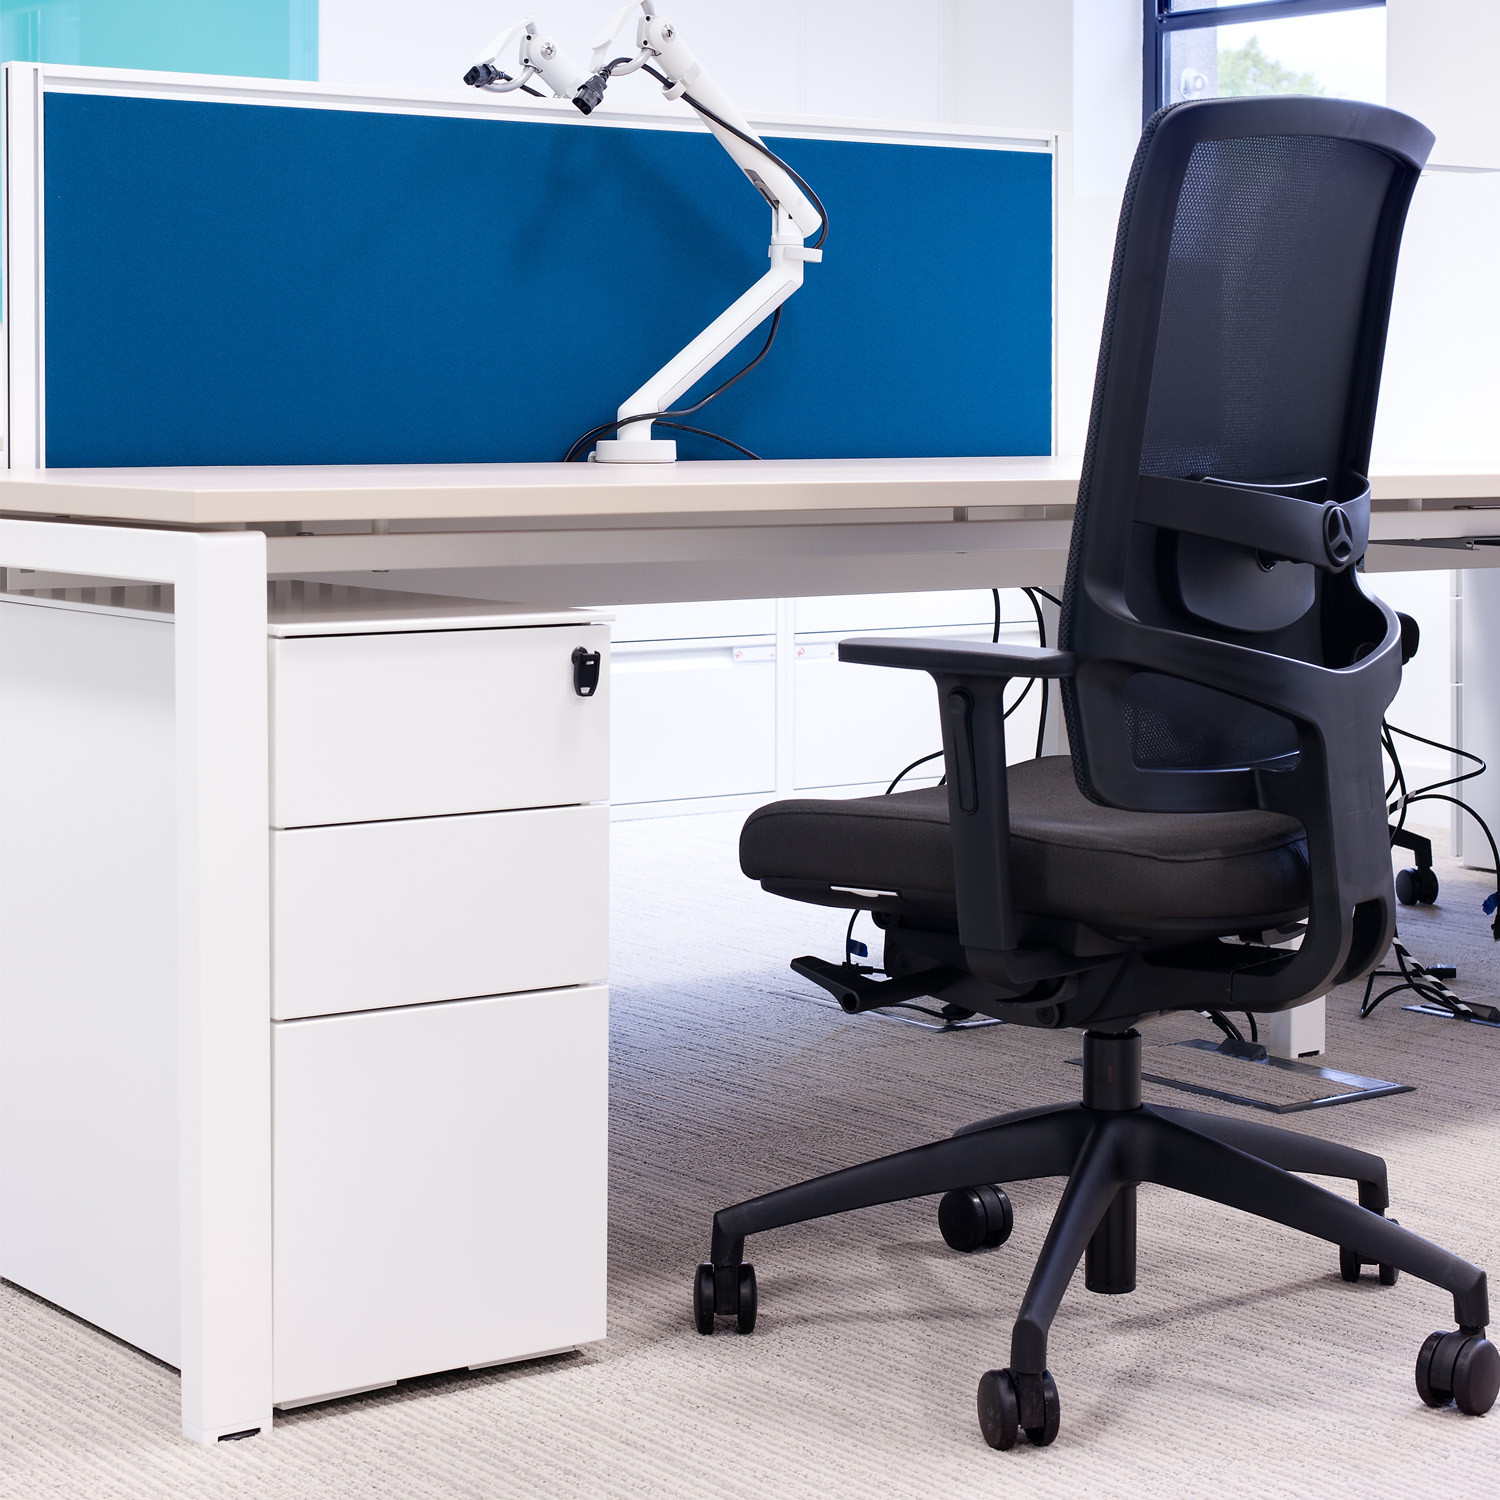 Unite SE Bench Desk by KI Storage